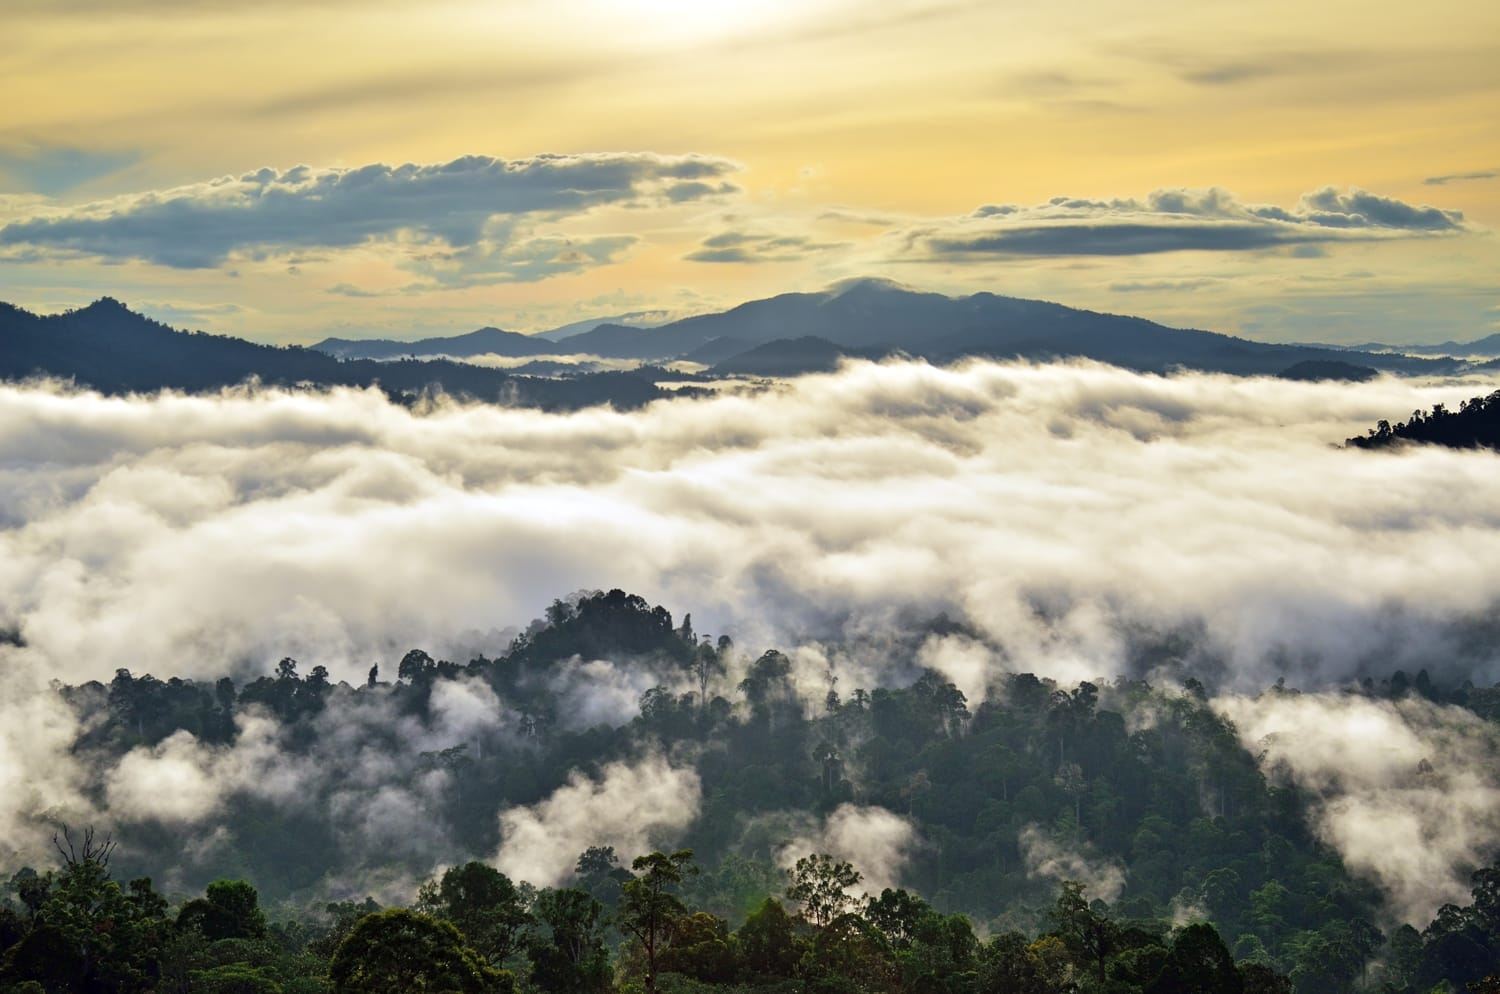 Sunrise with fogs and mist over rain forest in Danum Valley Conservation Area in Lahad Datu, Sabah Borneo, Malaysia.